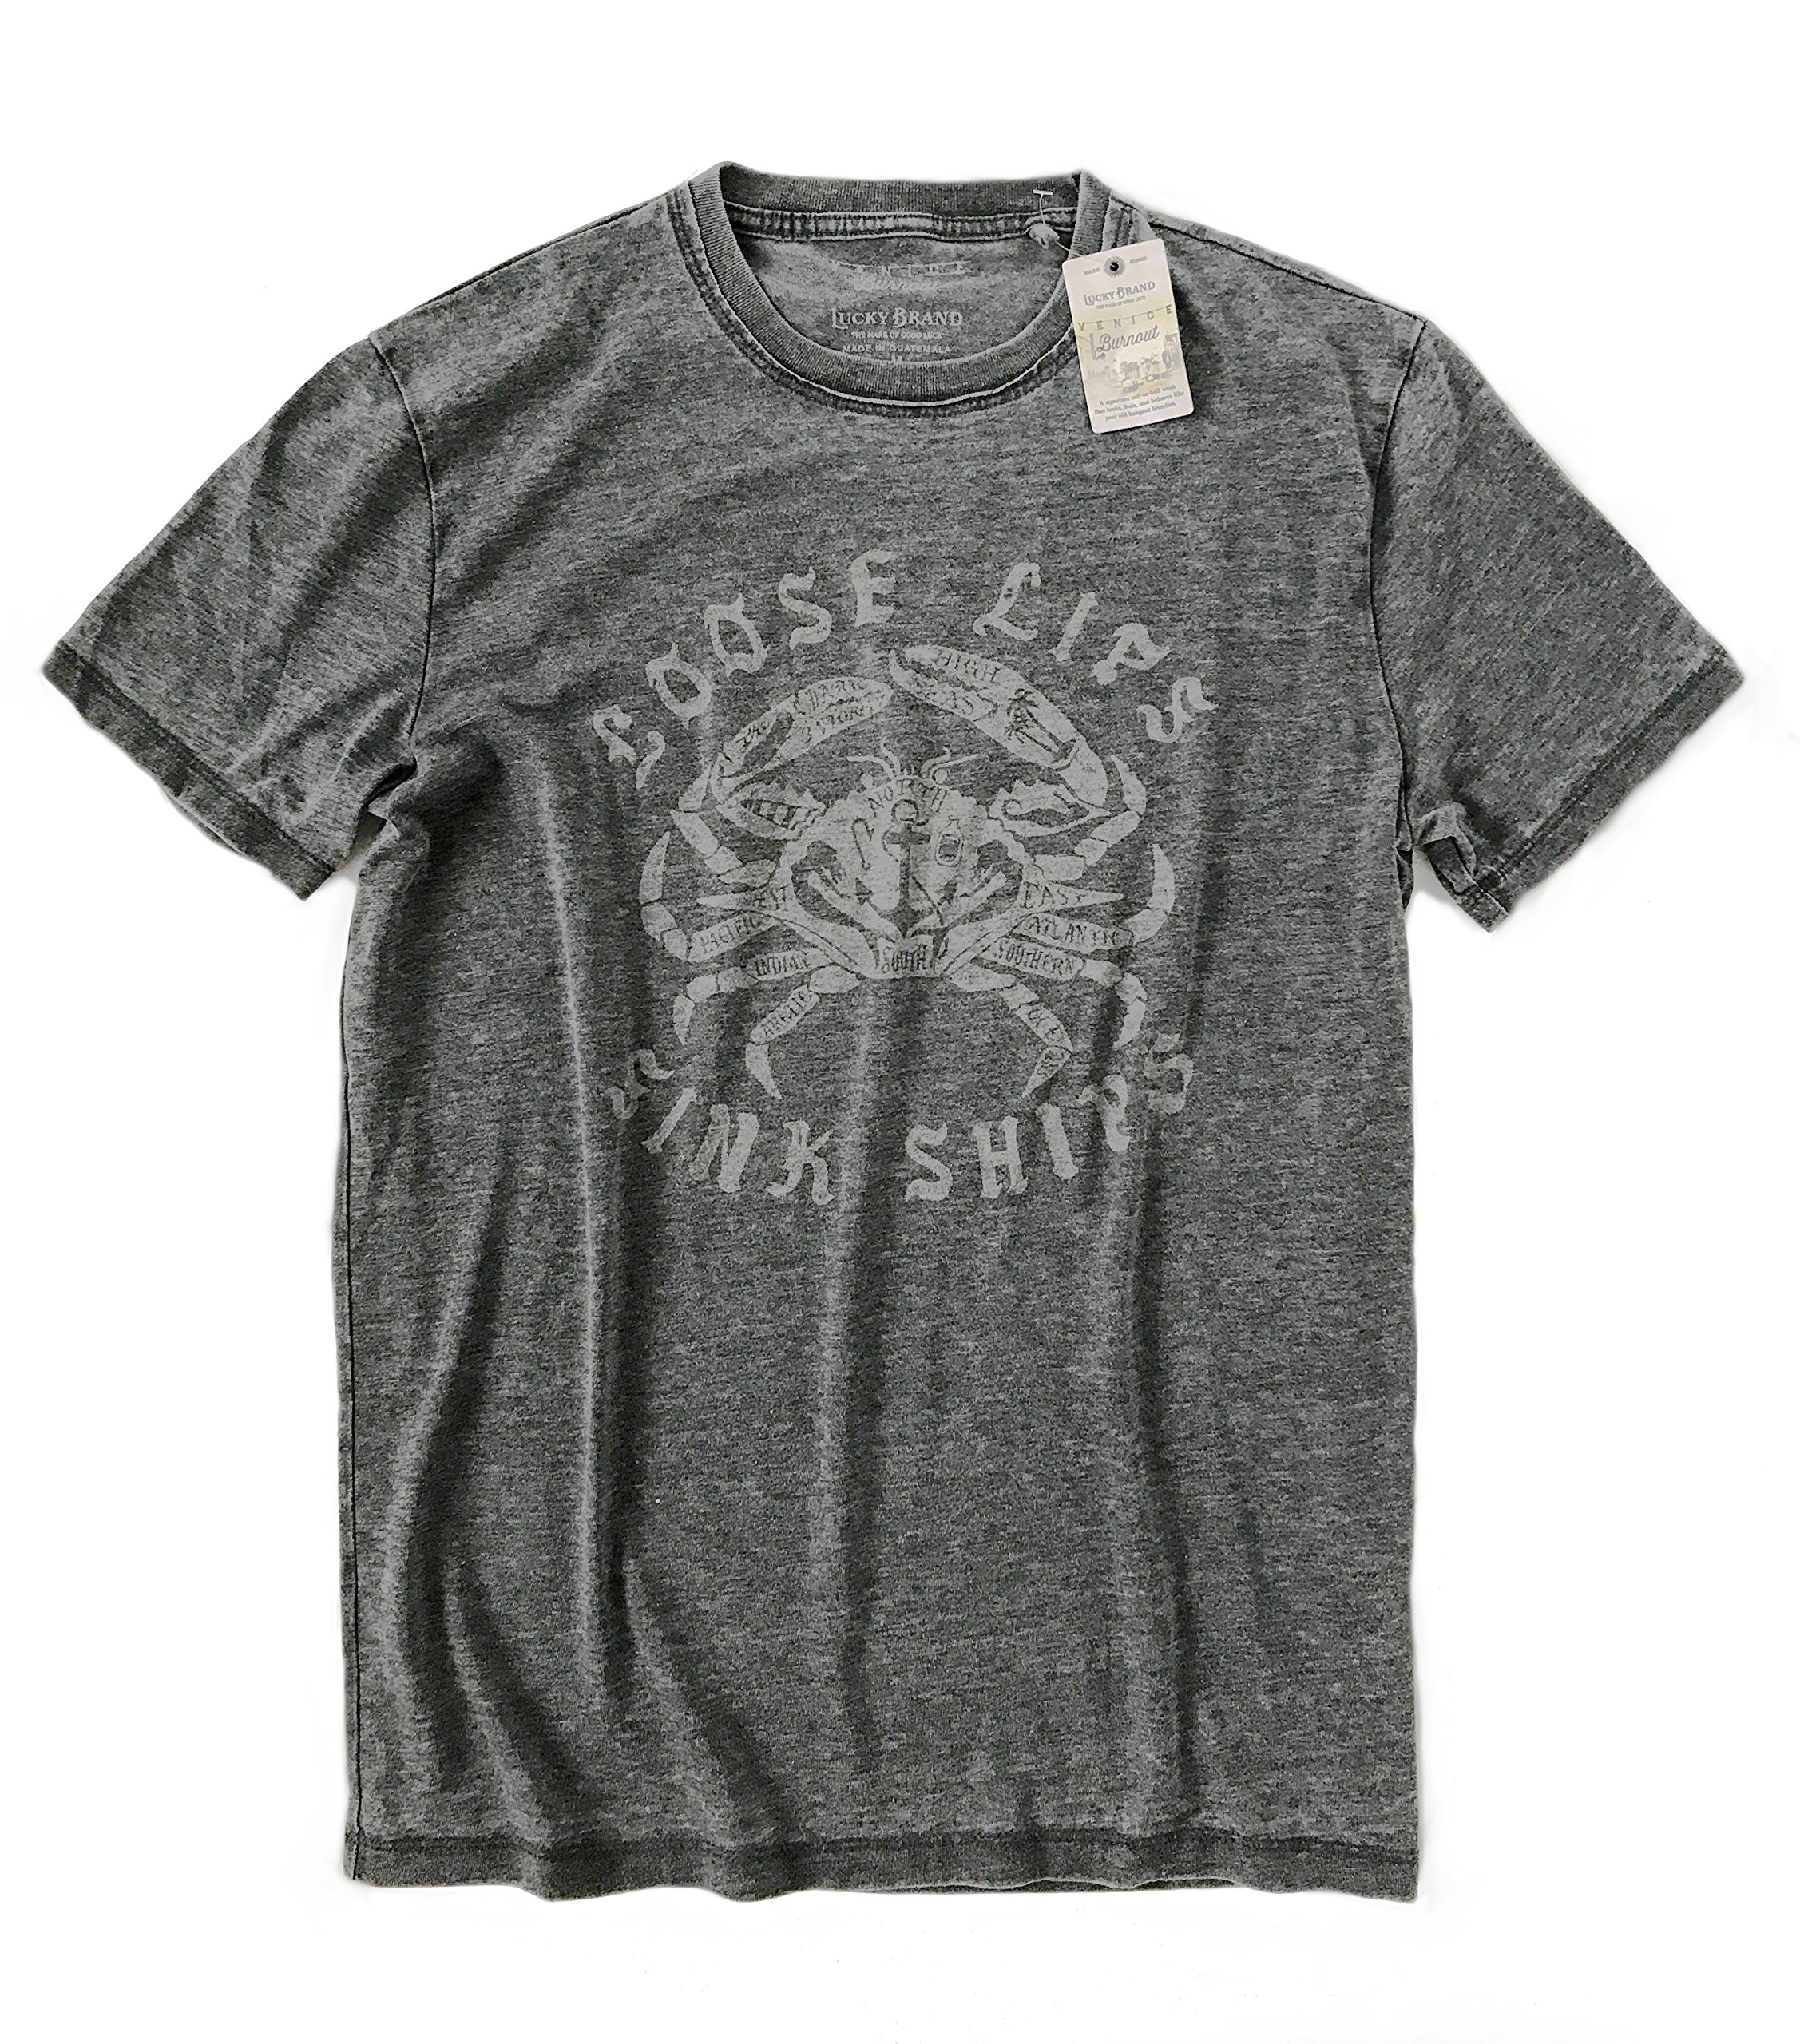 Lucky Brand Men's Distressed Loose Lips Sink Ships Crab Tee (Medium)